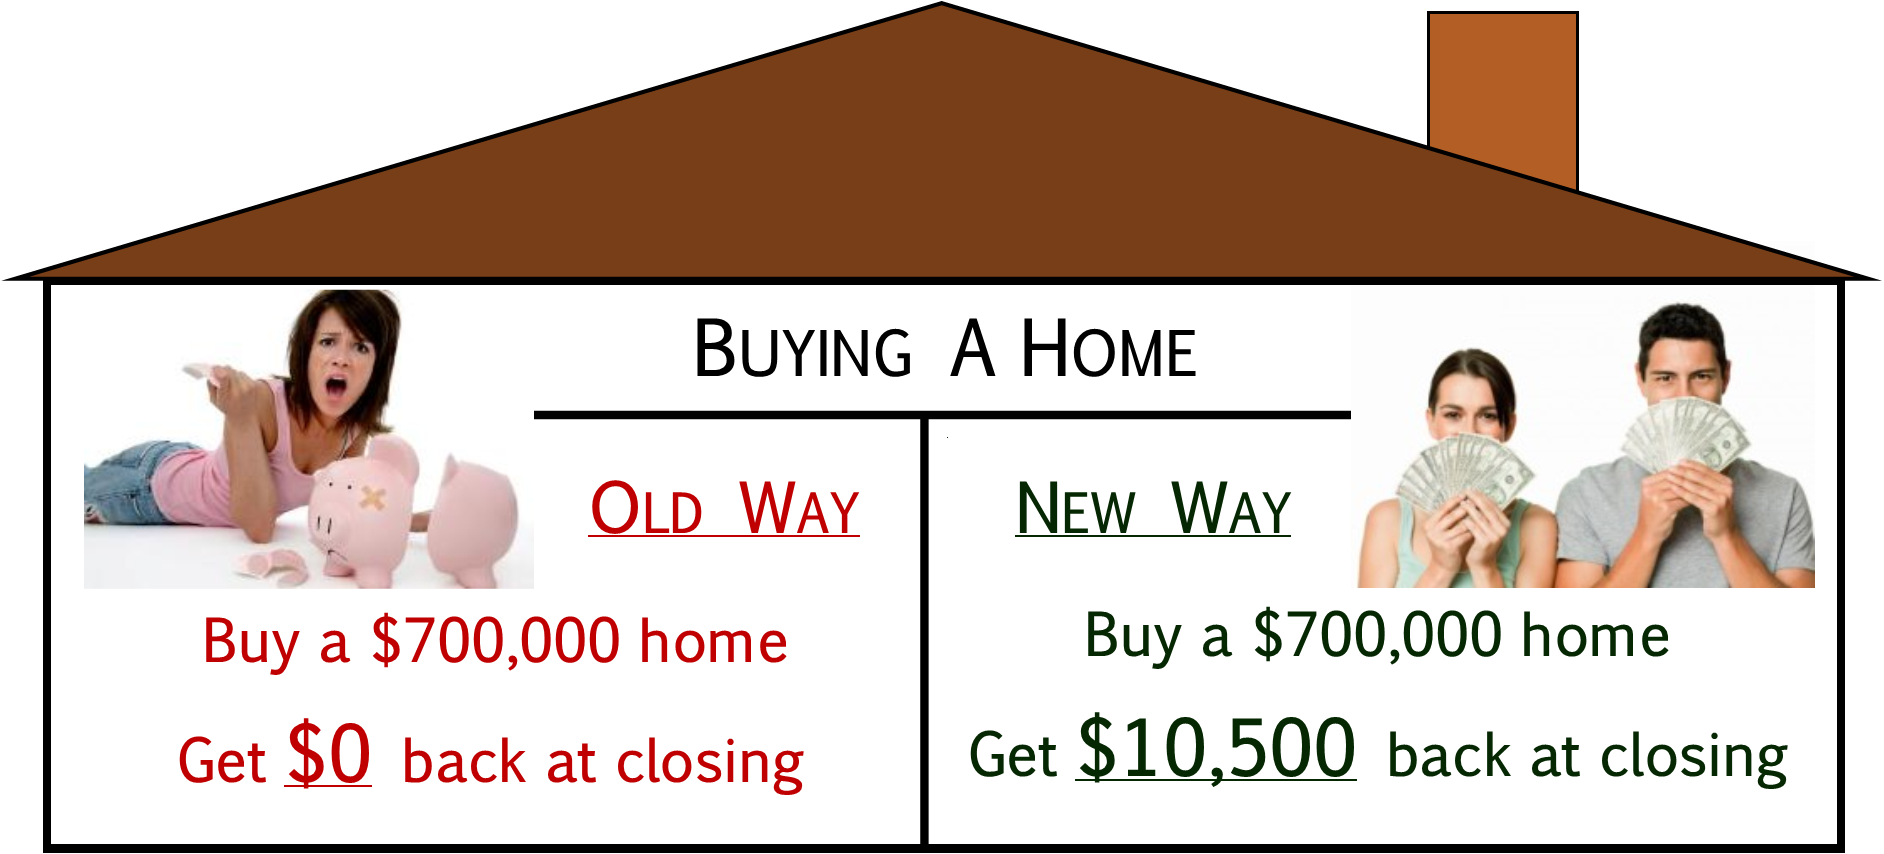 Old_New_Way_house.png